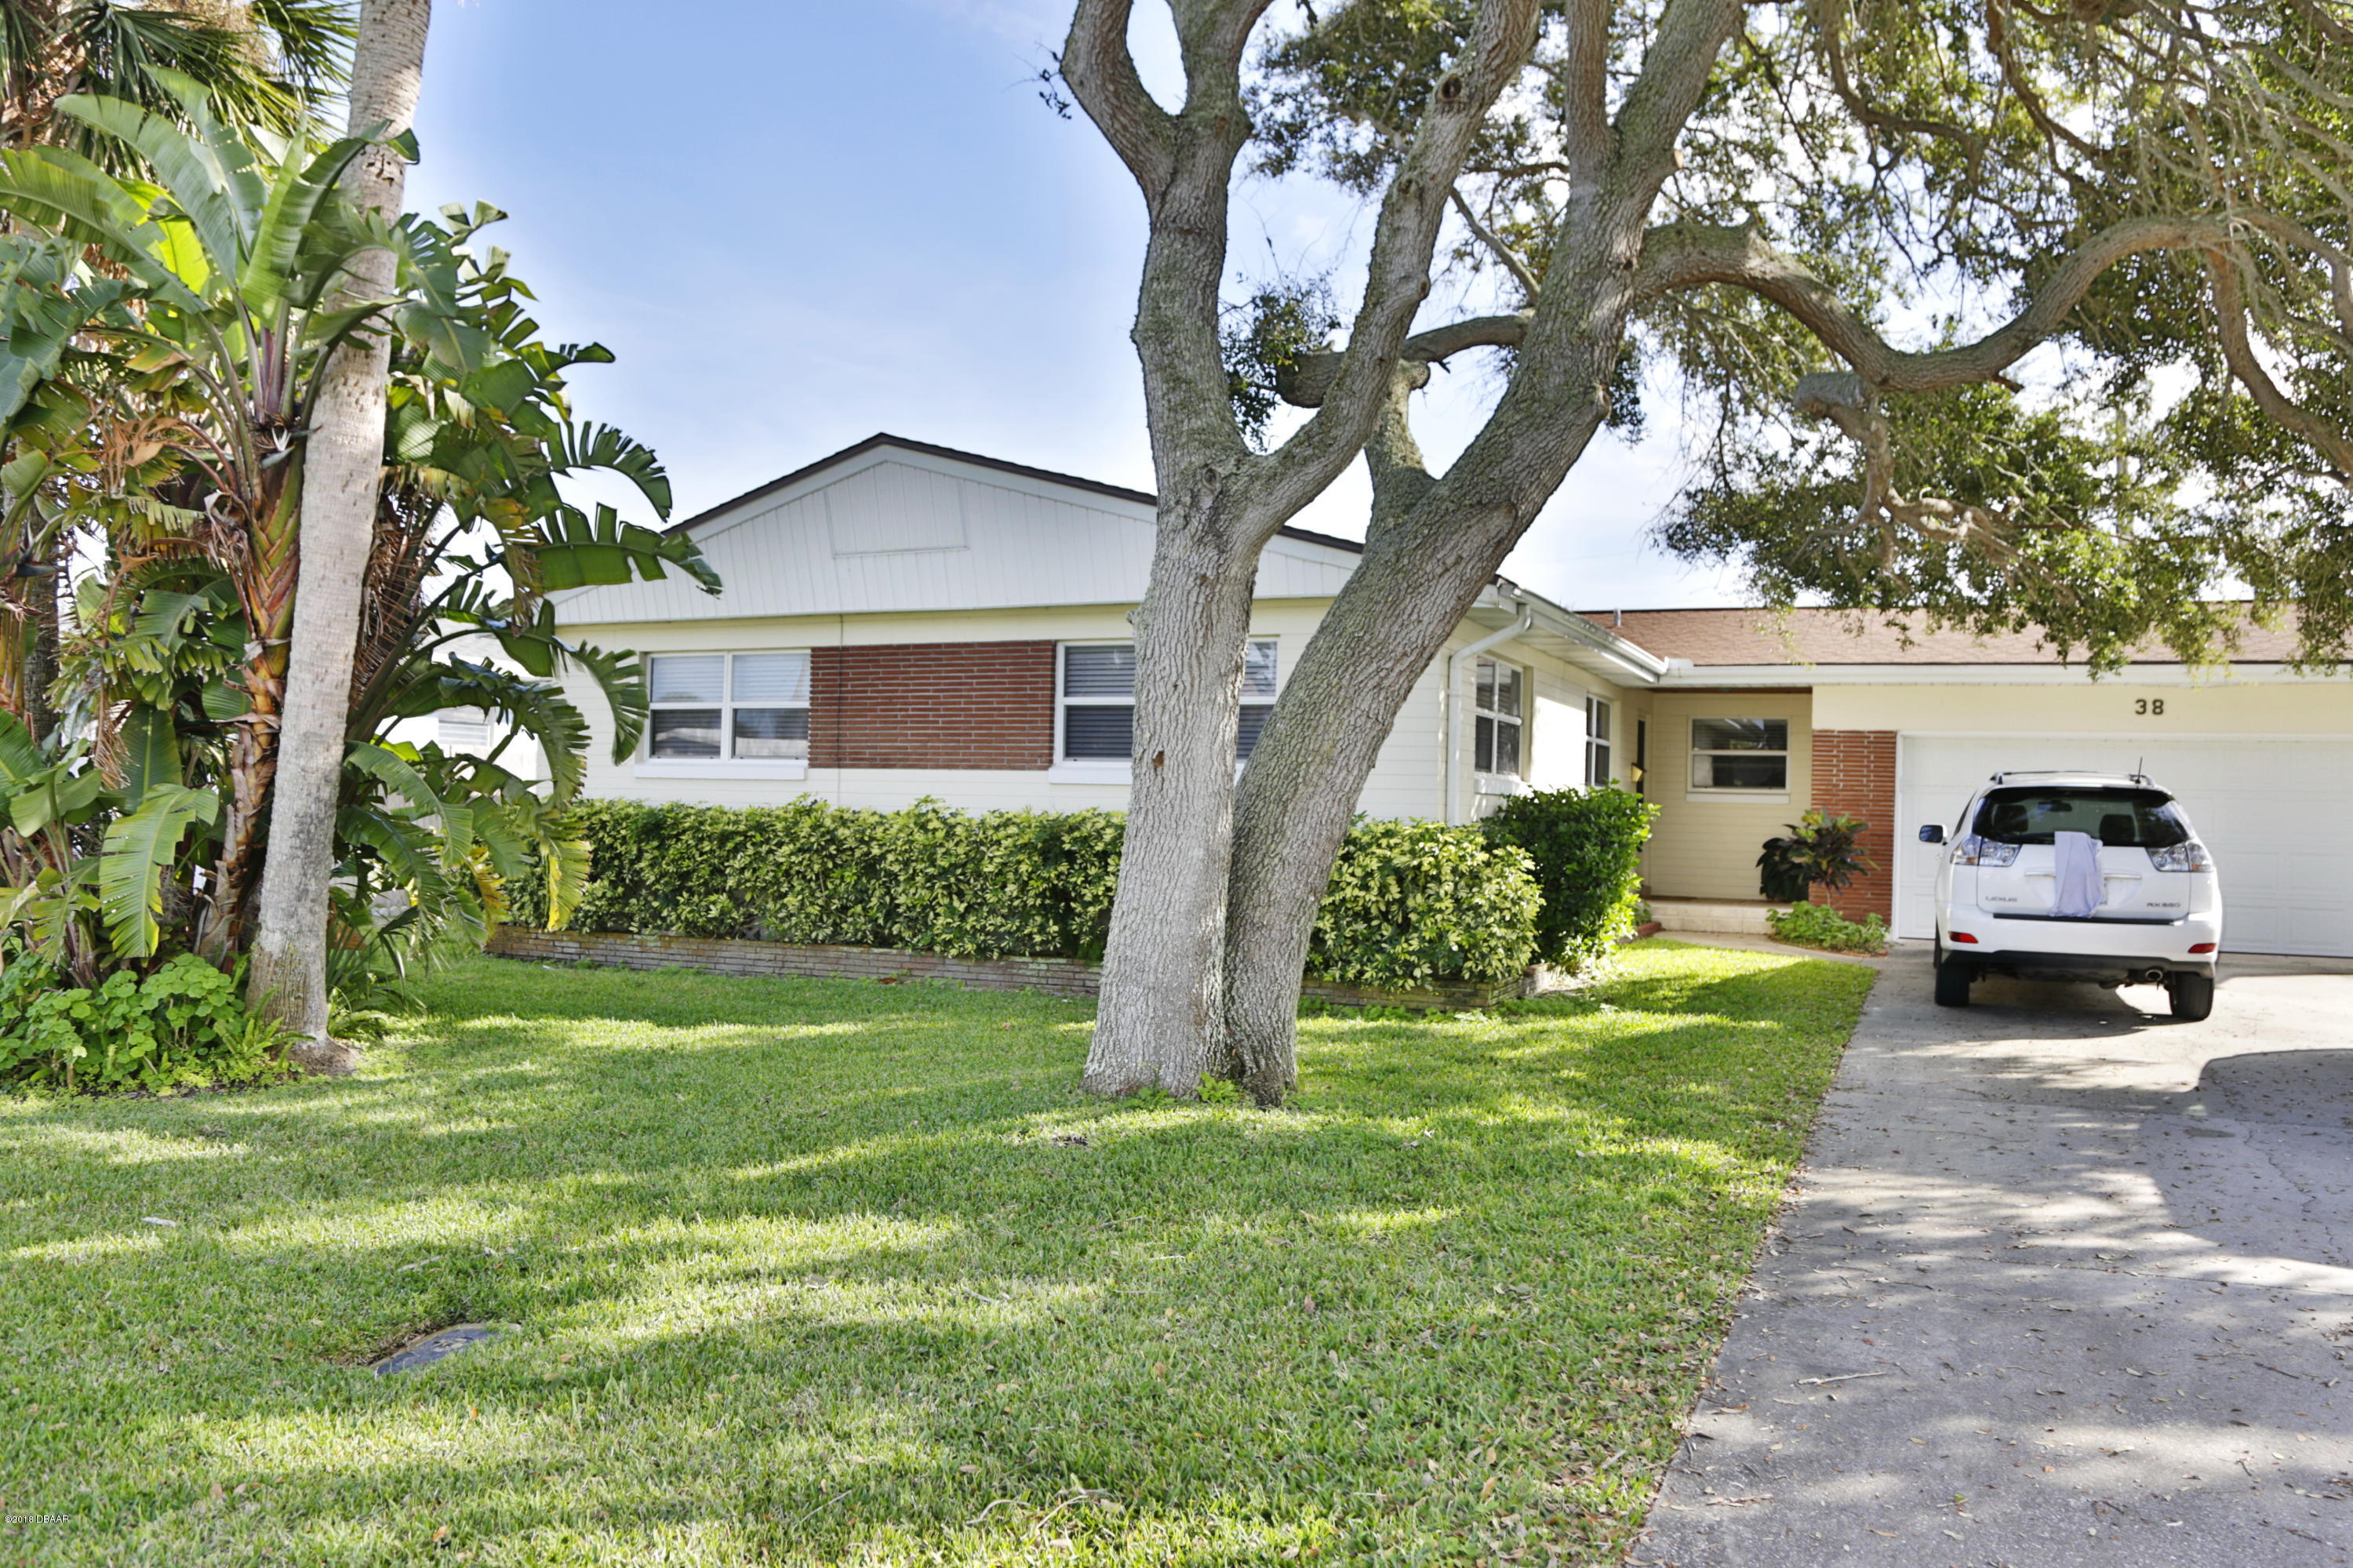 38 Country Club Drive 32176 - One of Ormond Beach Homes for Sale